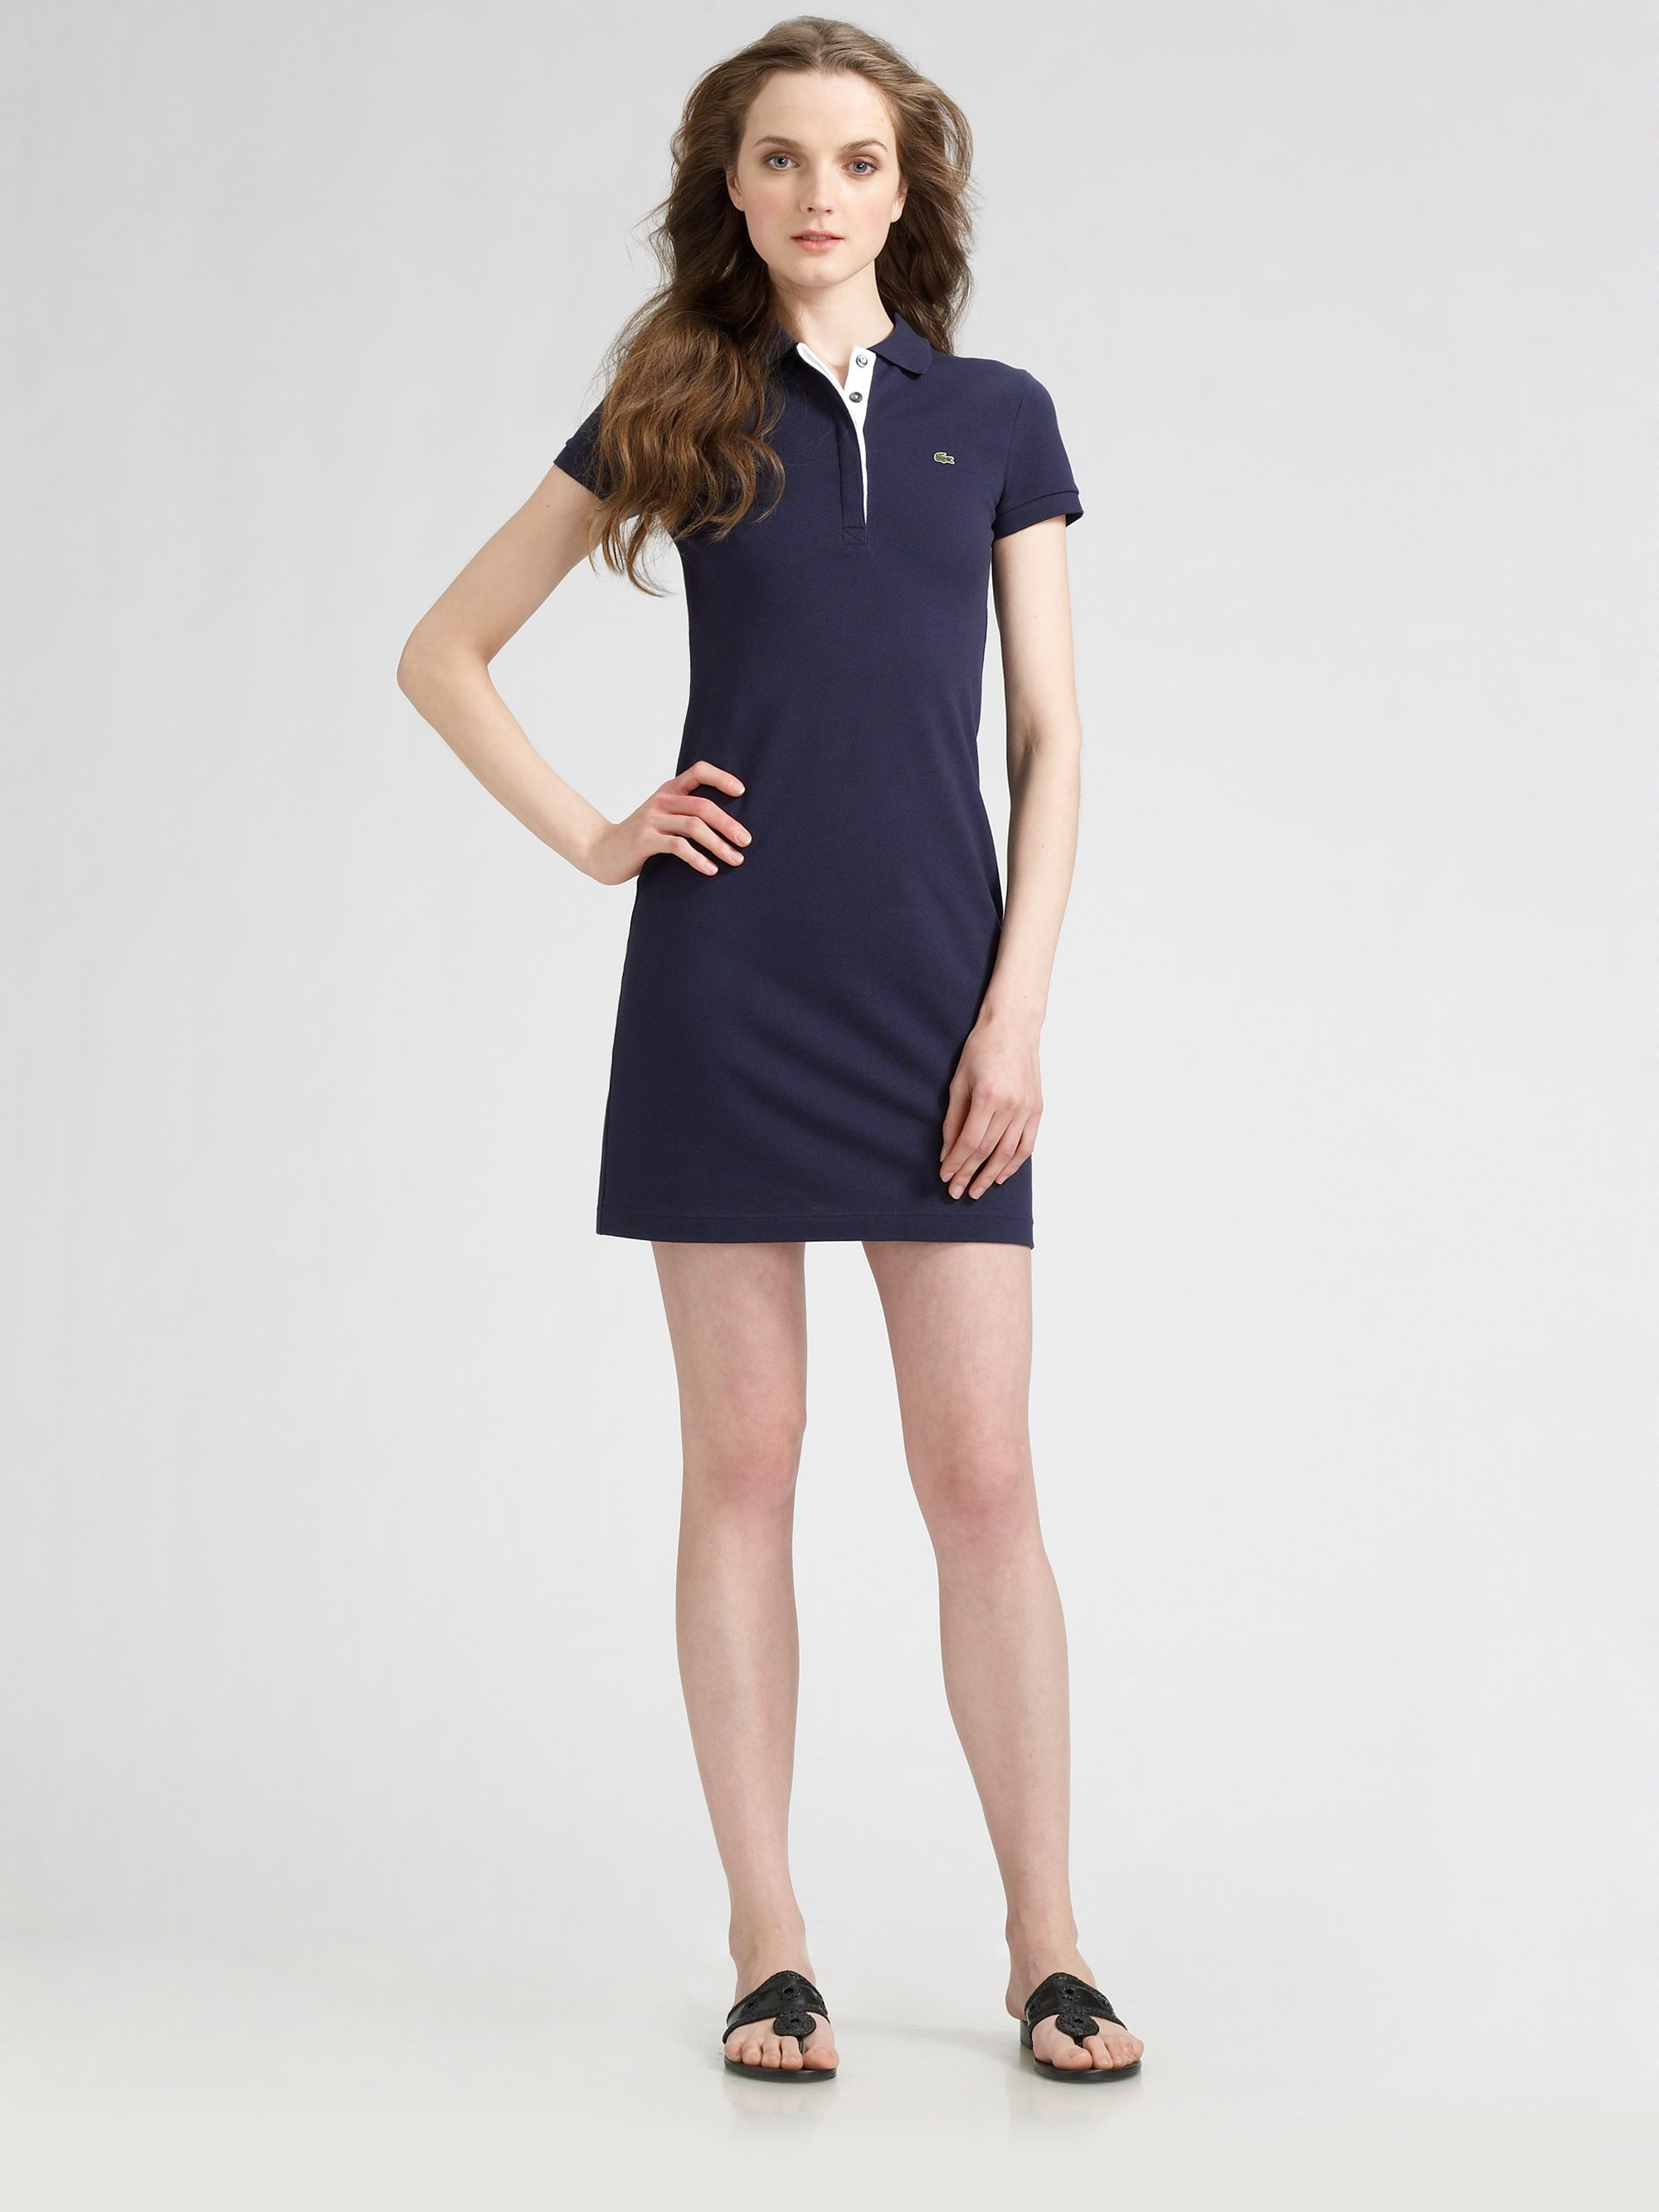 Lyst Lacoste Polo Shirtdress In Blue